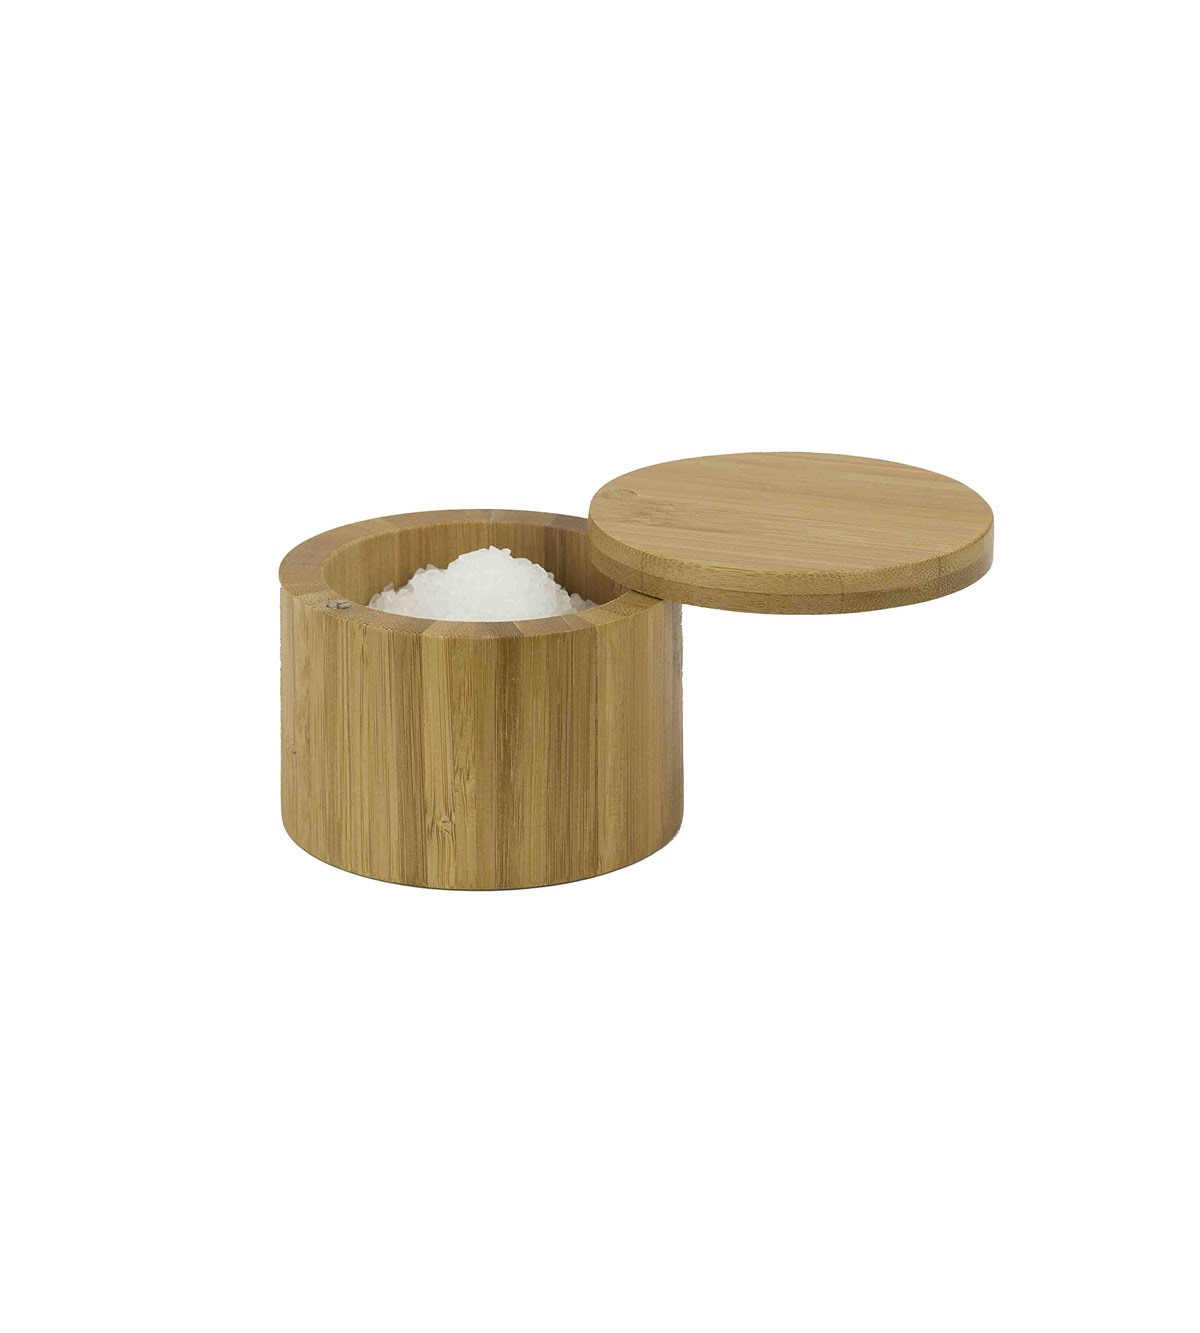 Home Basics Bamboo Swivel Salt Box